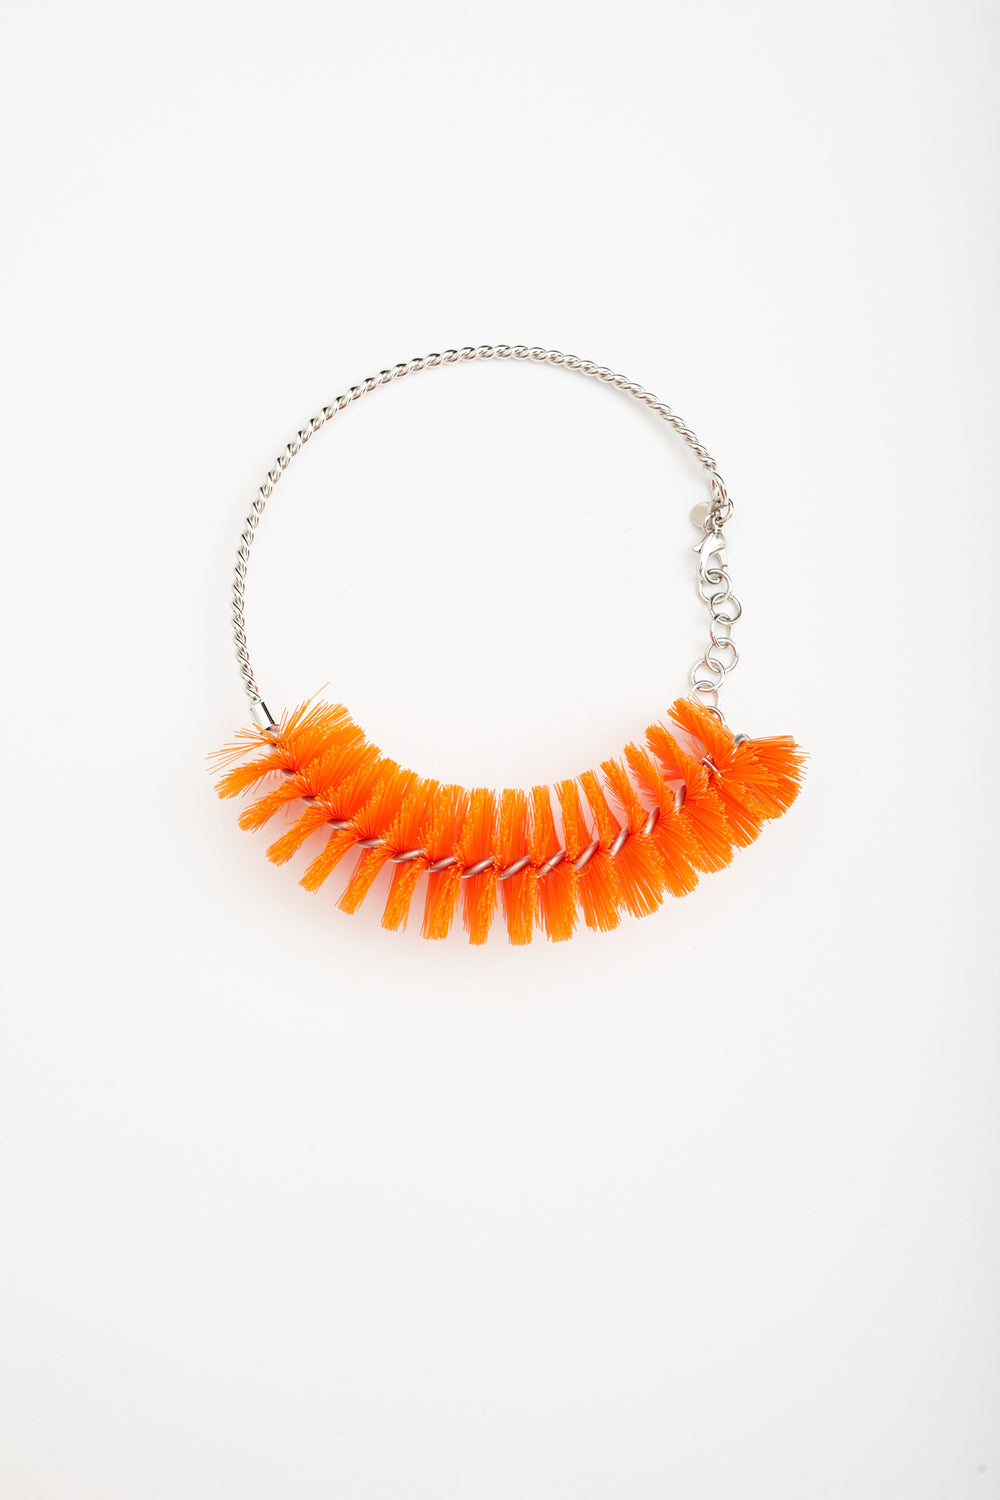 Studio Avra - ROUND NECKLACE - ORANGE